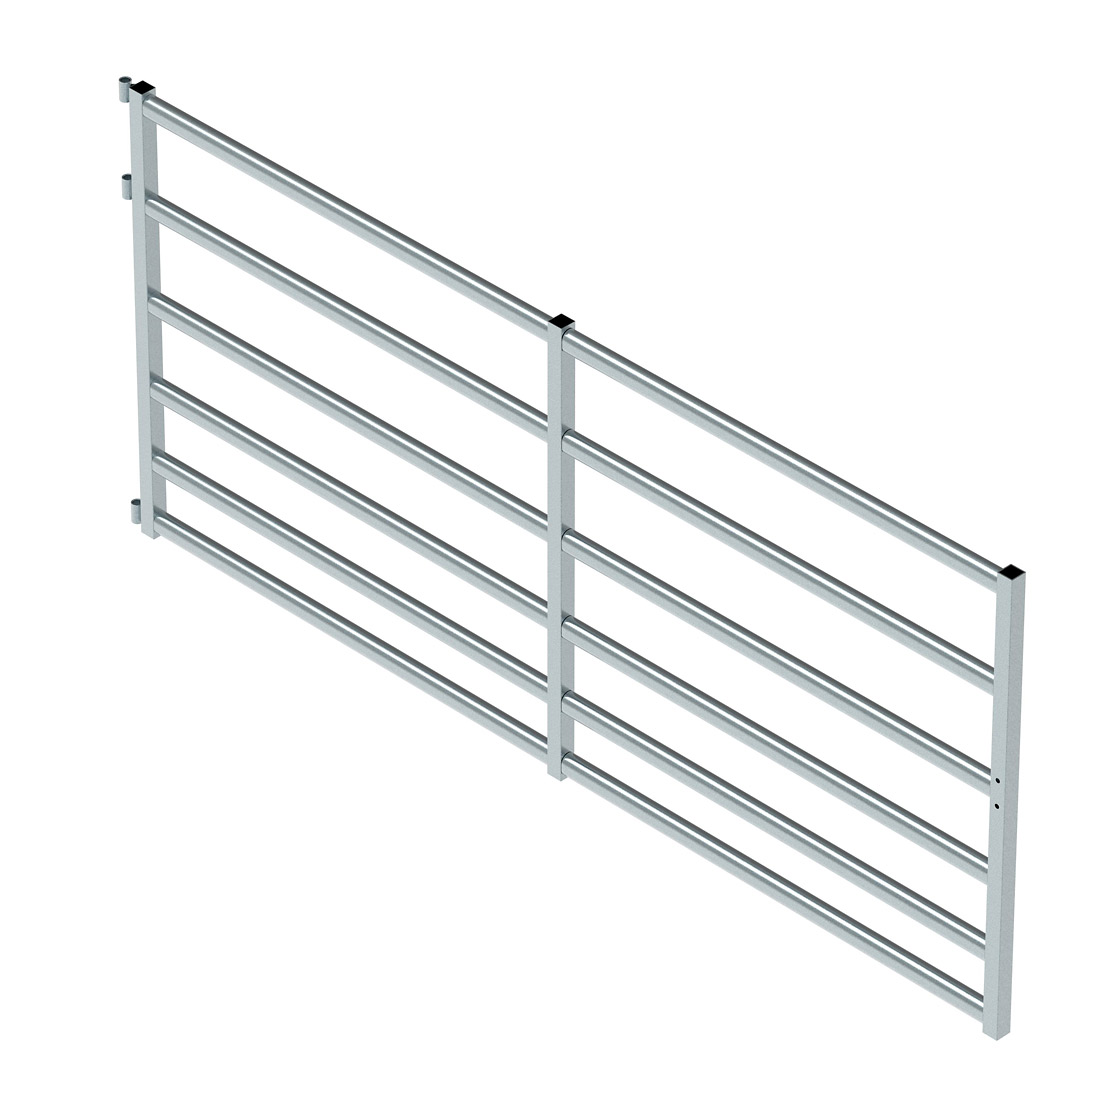 Cattle Gate 6 Rail (3100mm x 1400mm High)